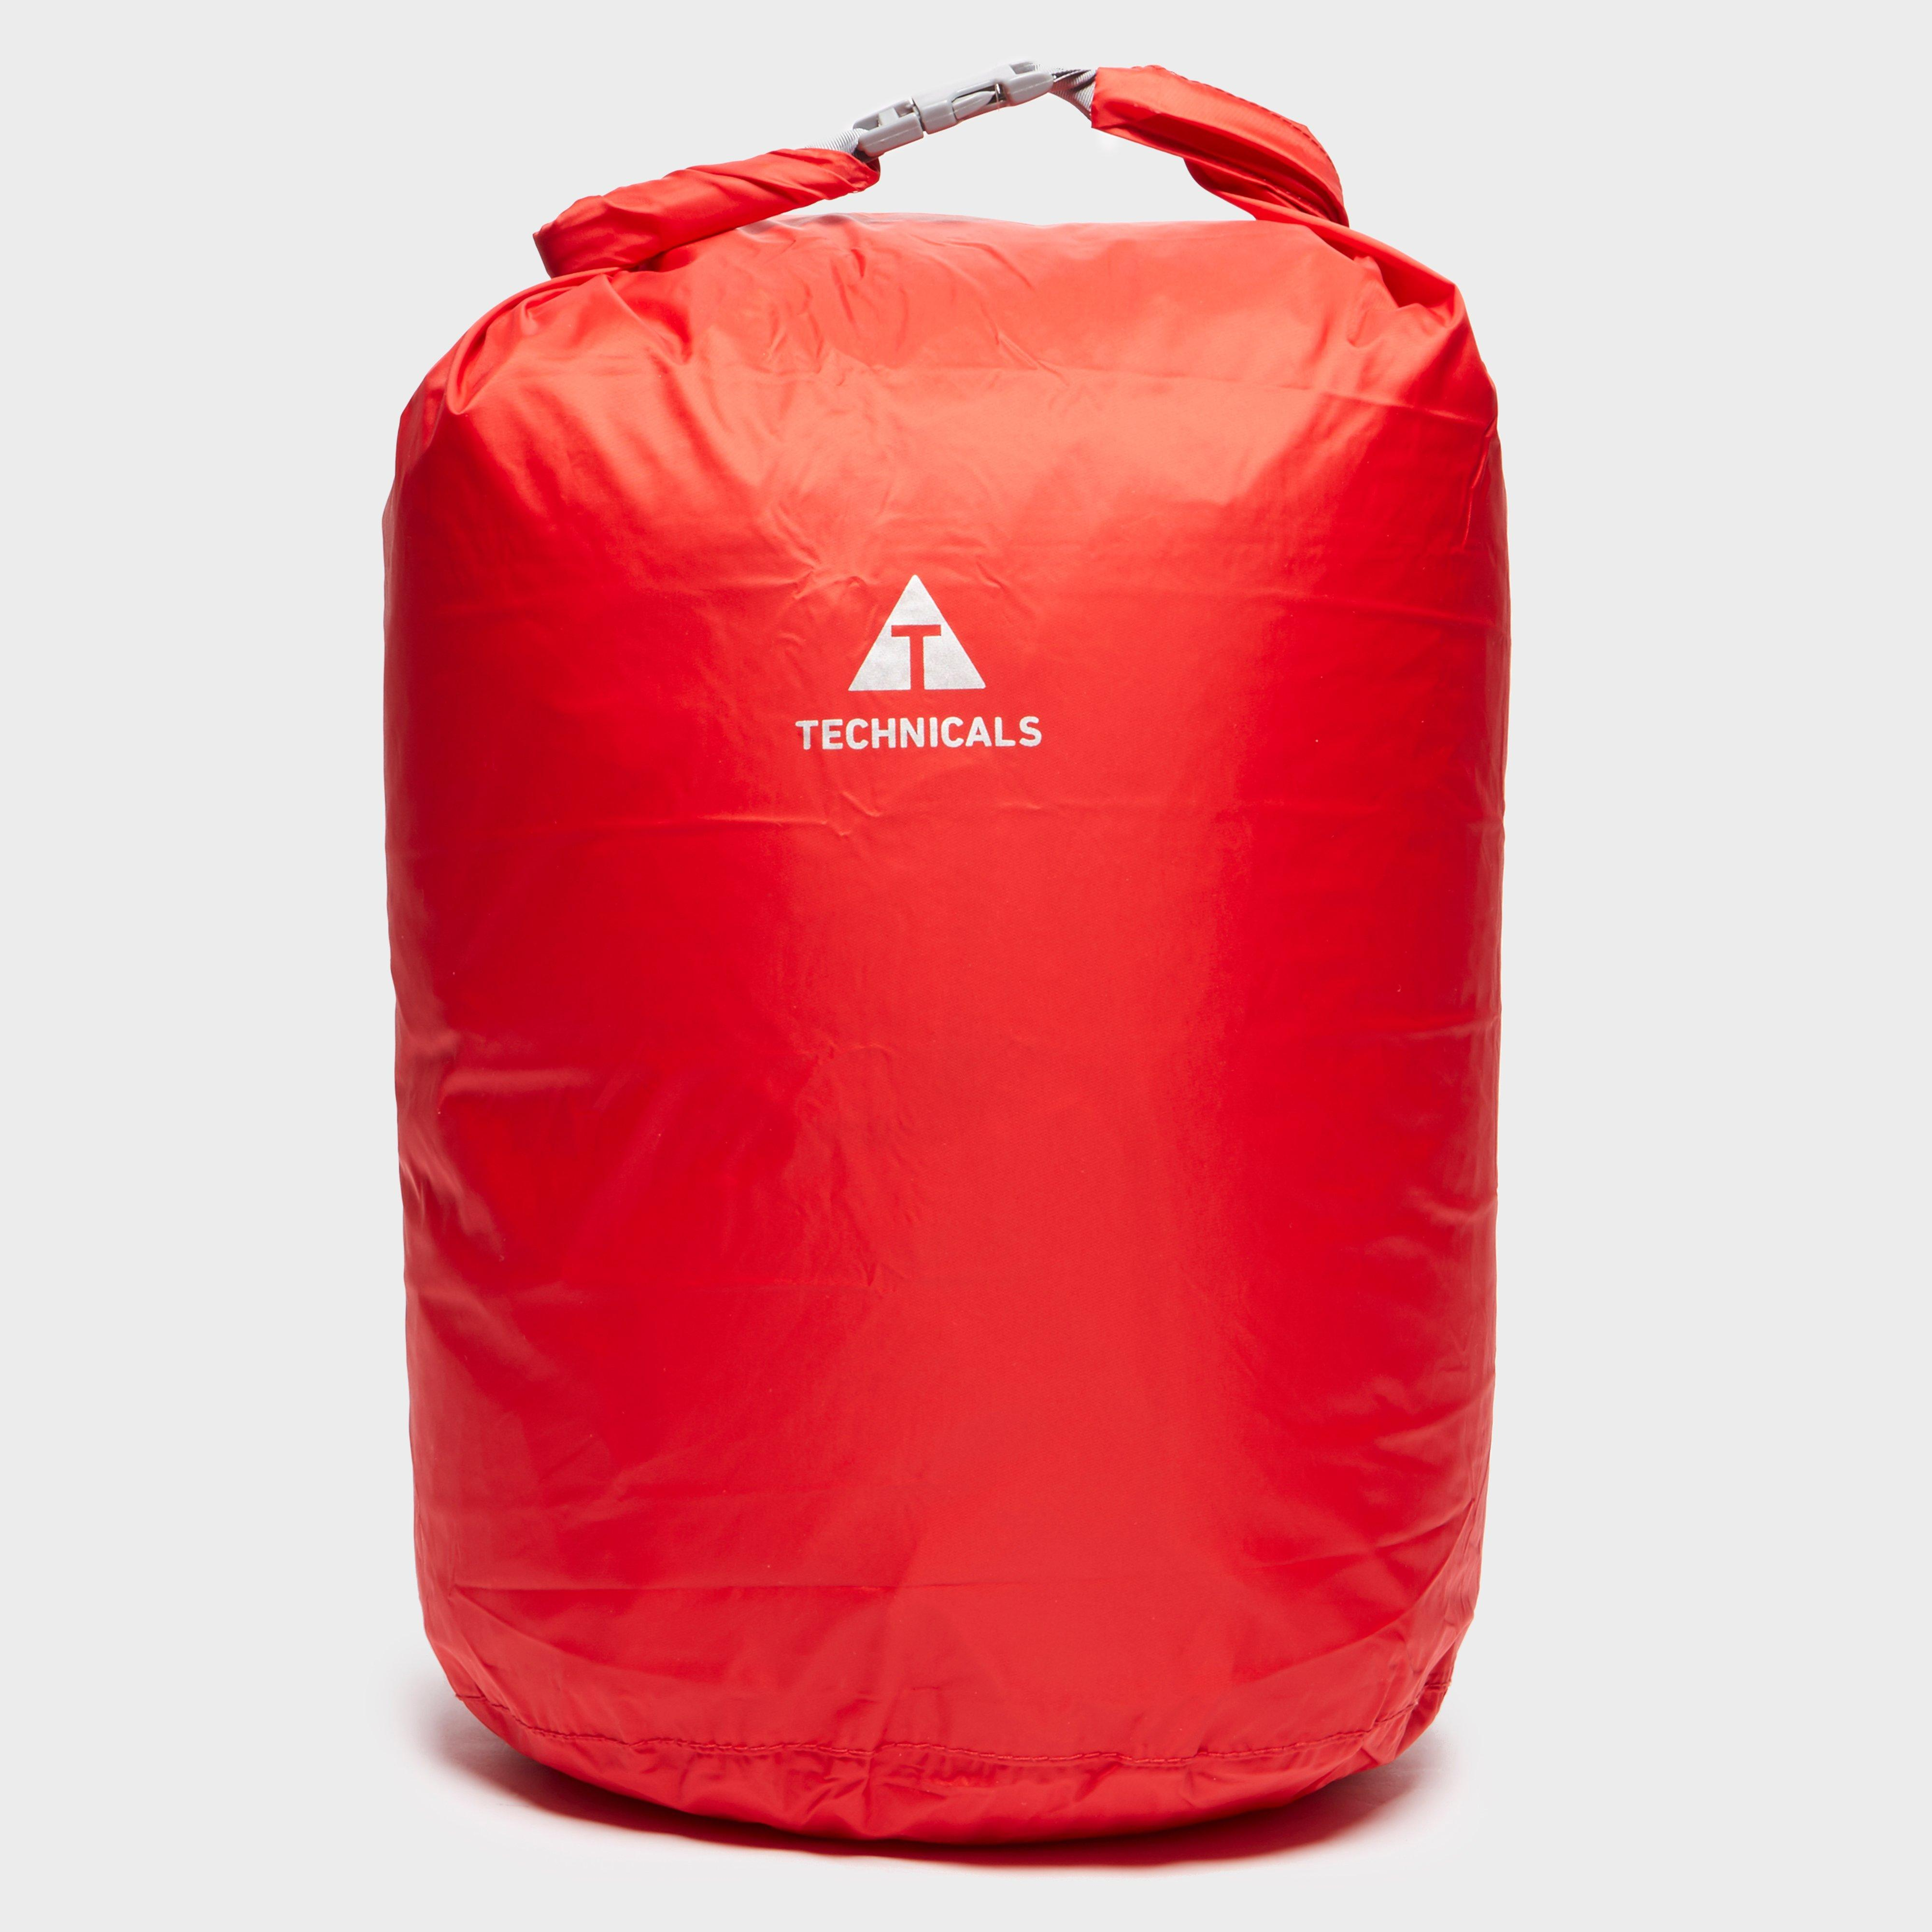 Technicals Dry Bag 30L, Red